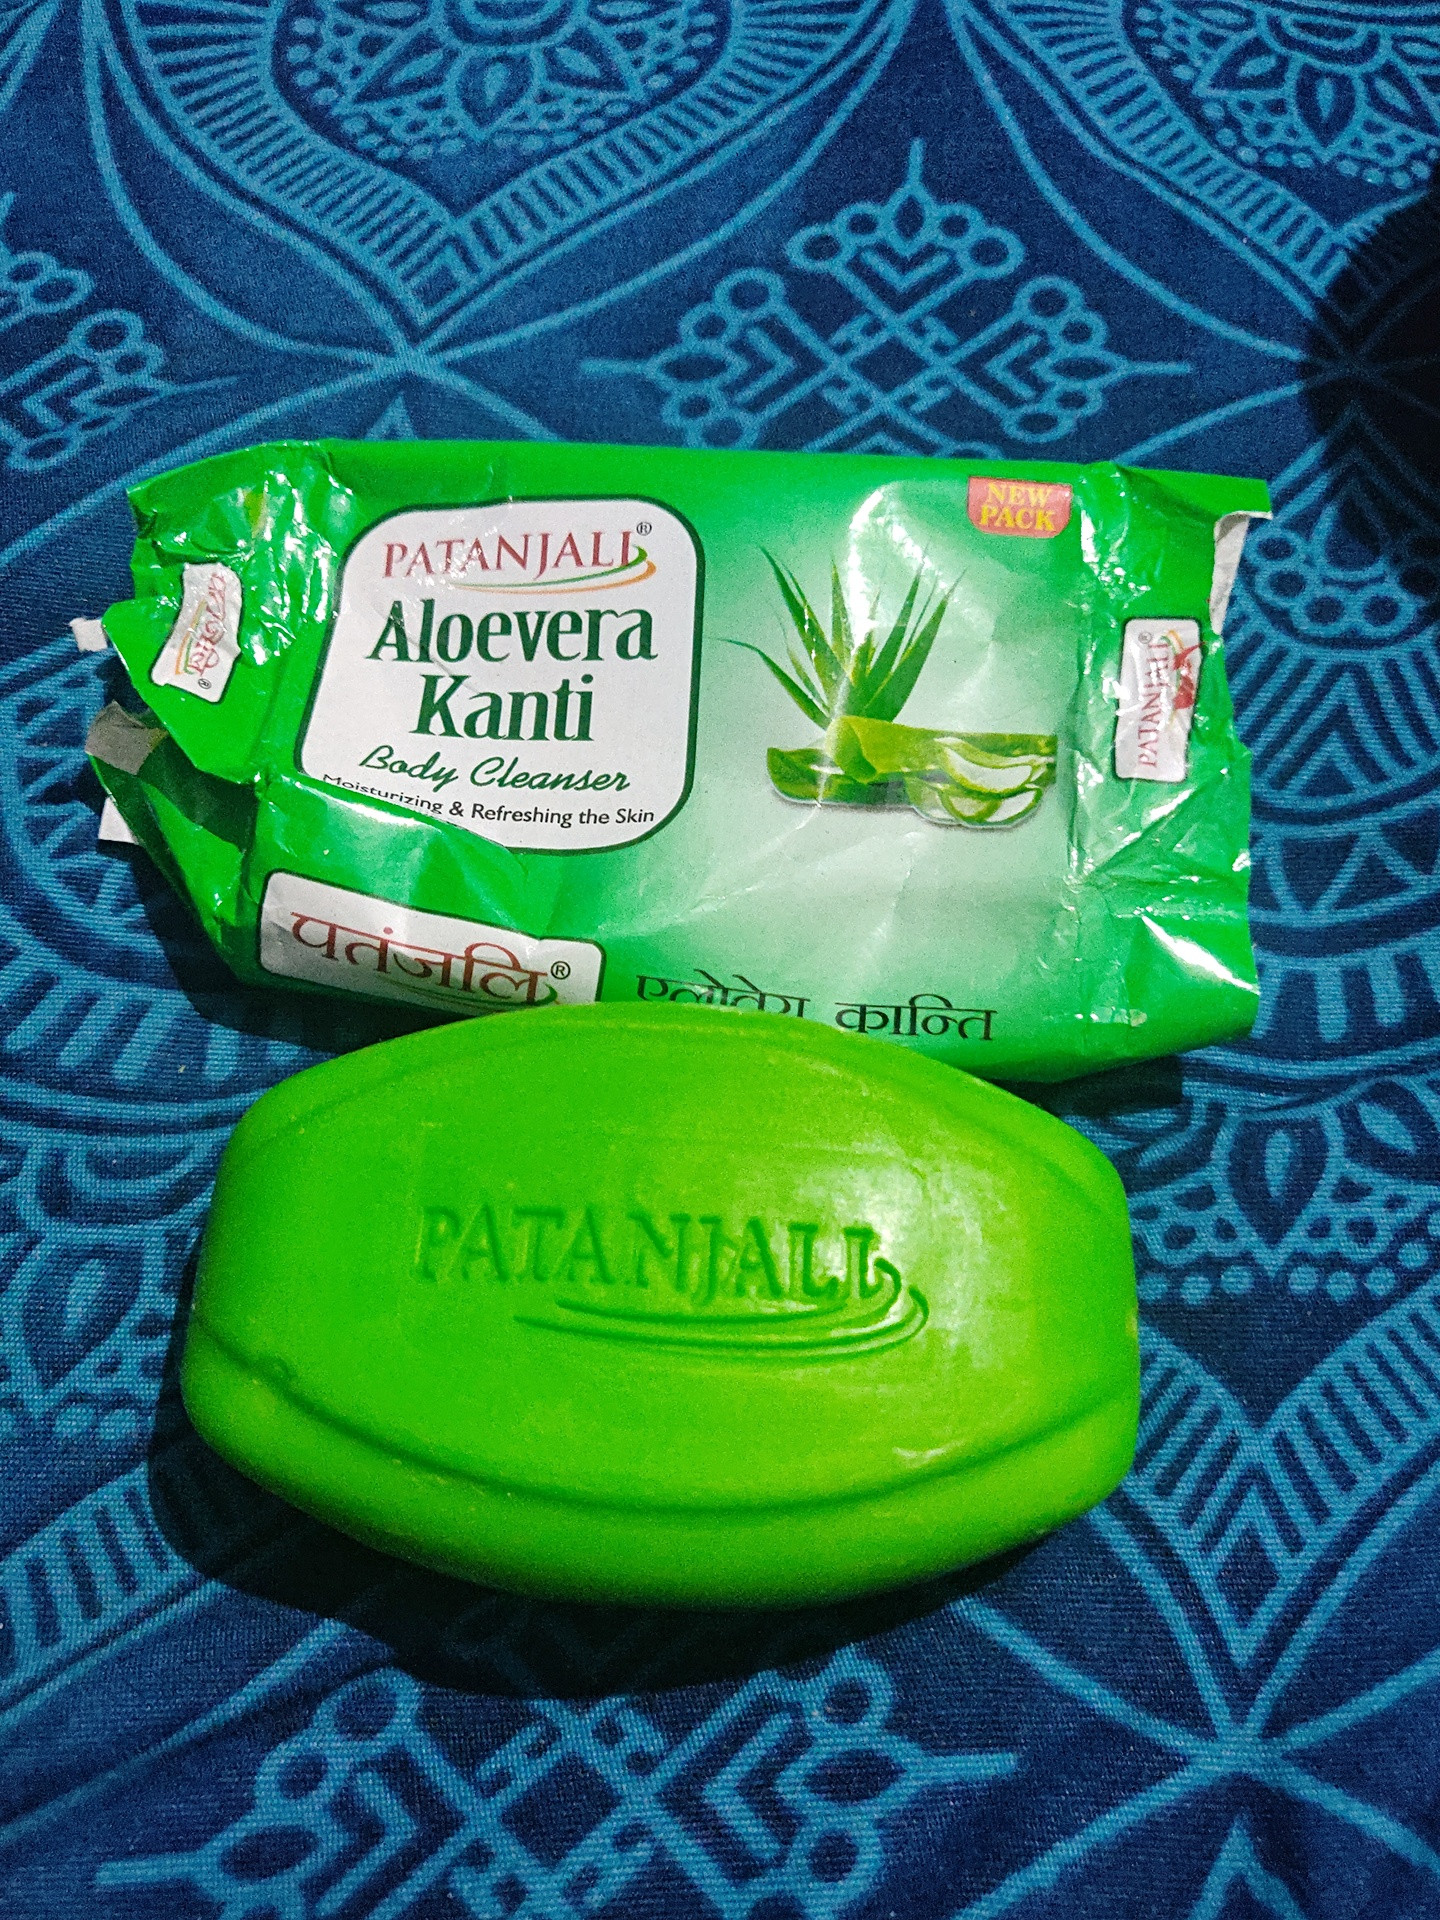 Patanjali Aloevera Kanti Body Cleanser -Amazing quality-By marlyn.mansion